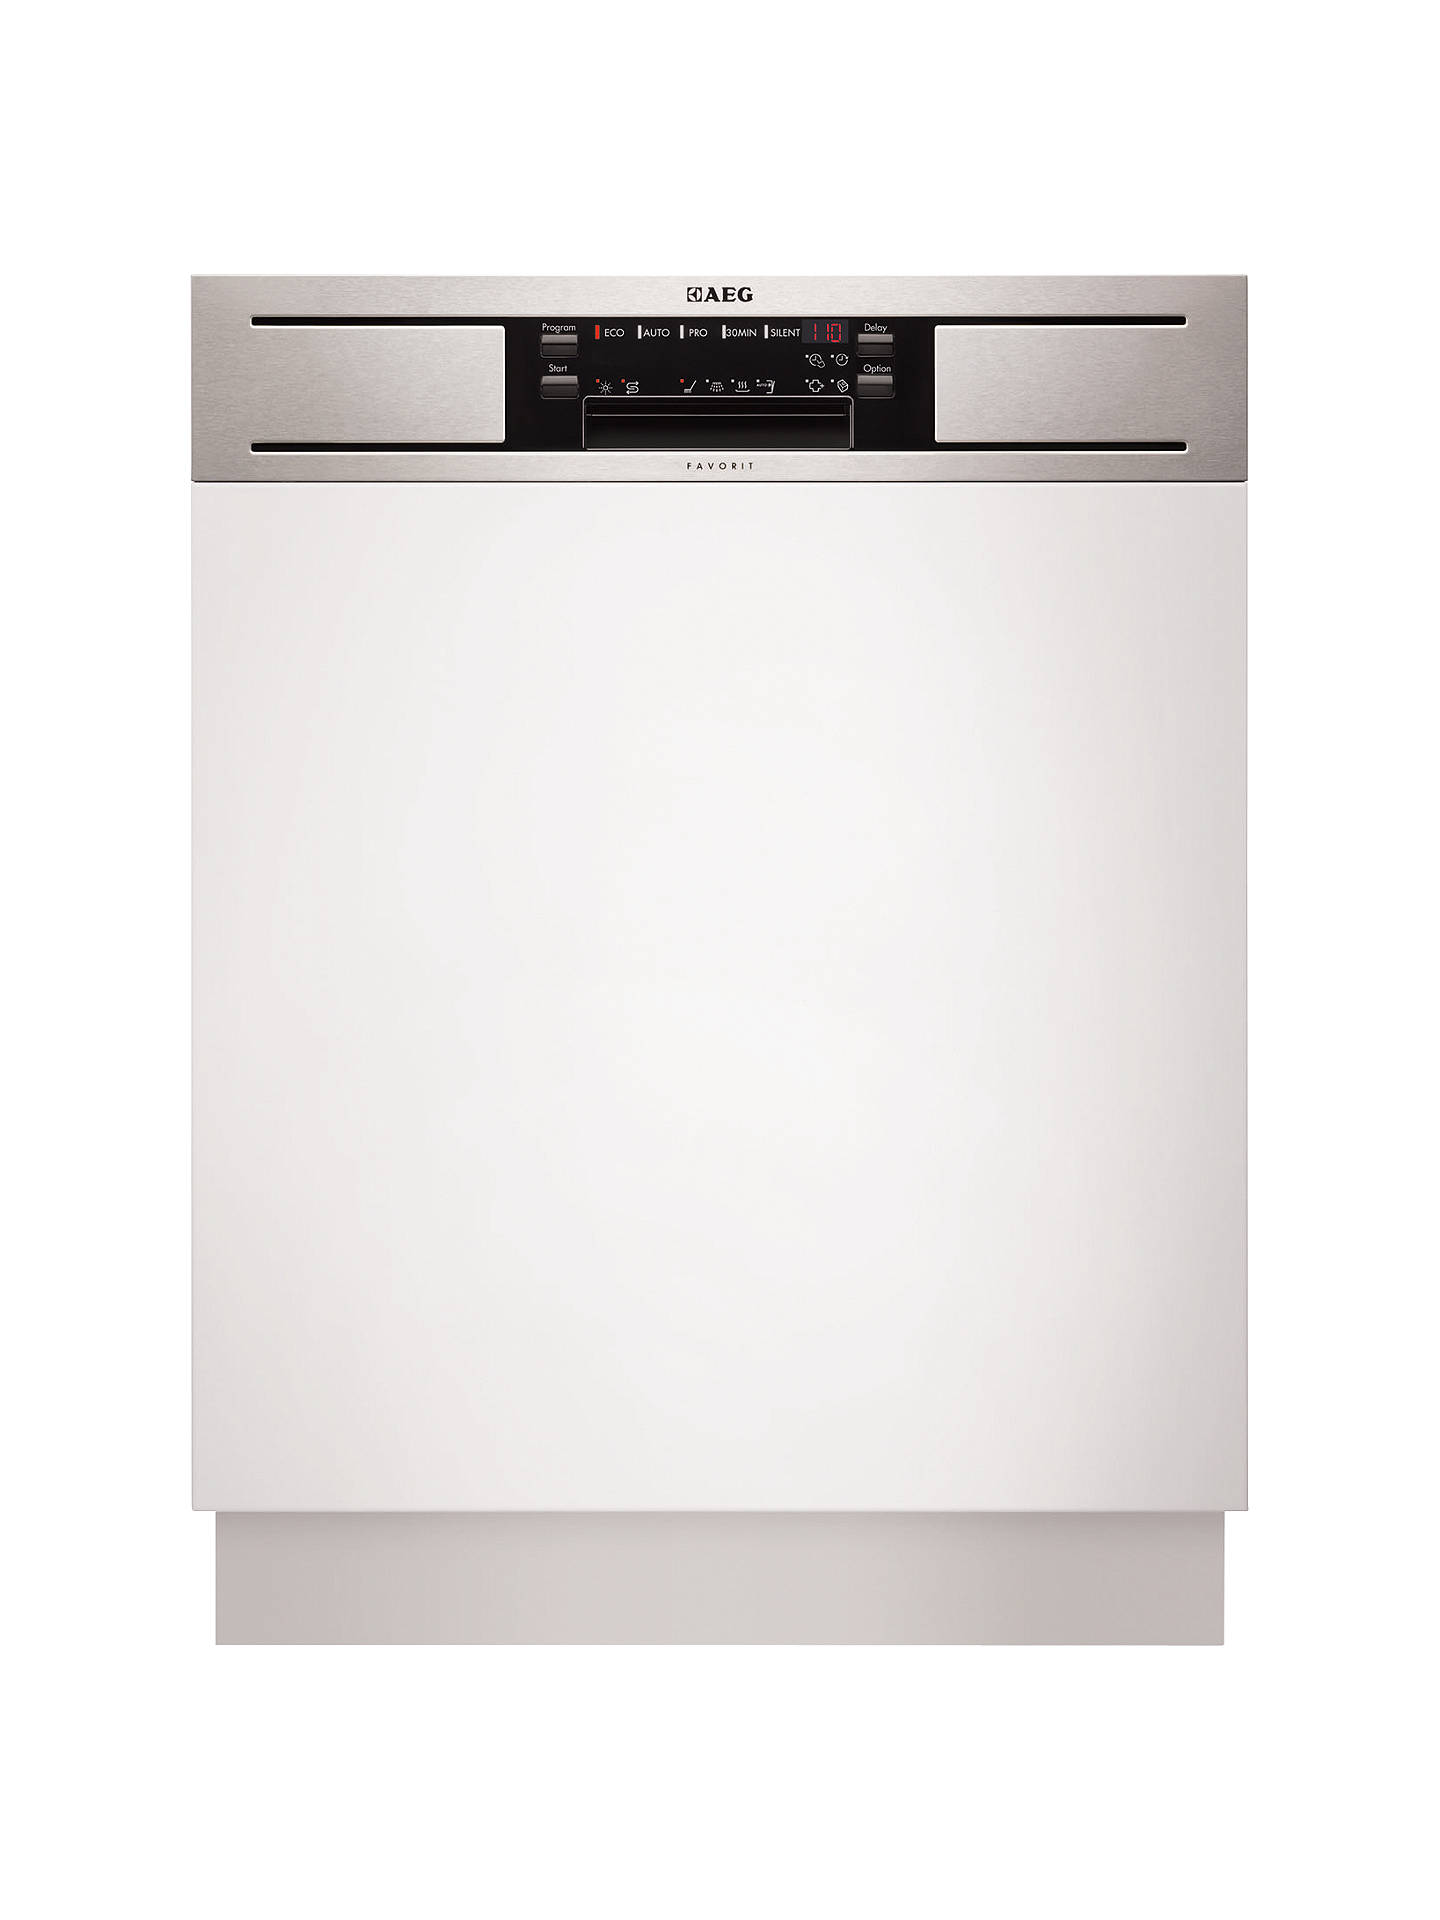 Aeg F65610im0p Semi Integrated Dishwasher Stainless Steel At John